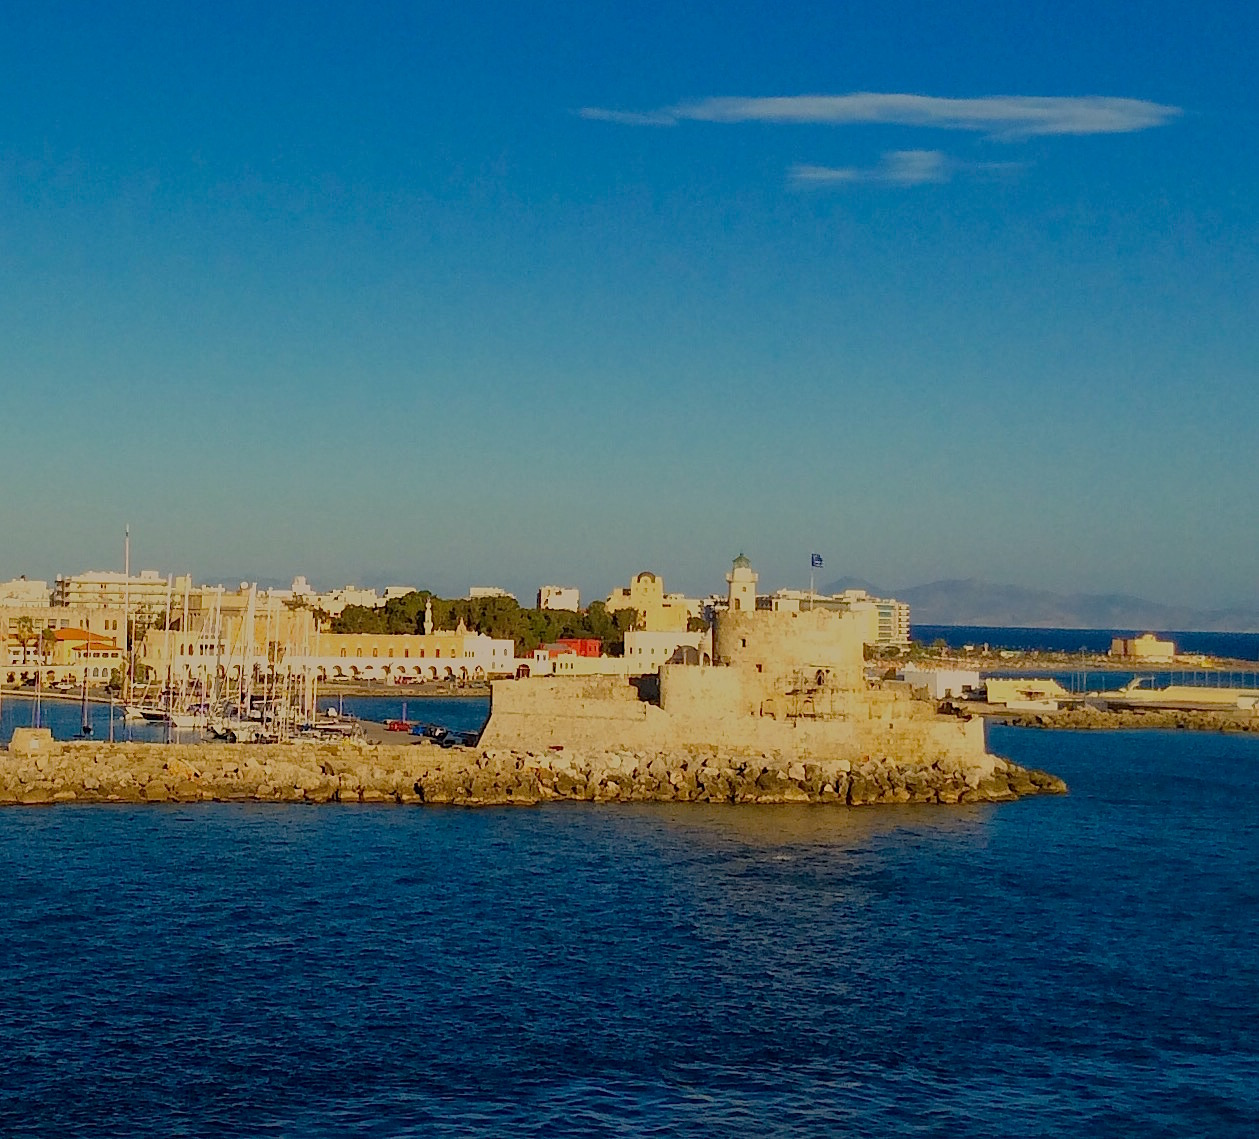 The Walled City Of Rhodes, From the Sea